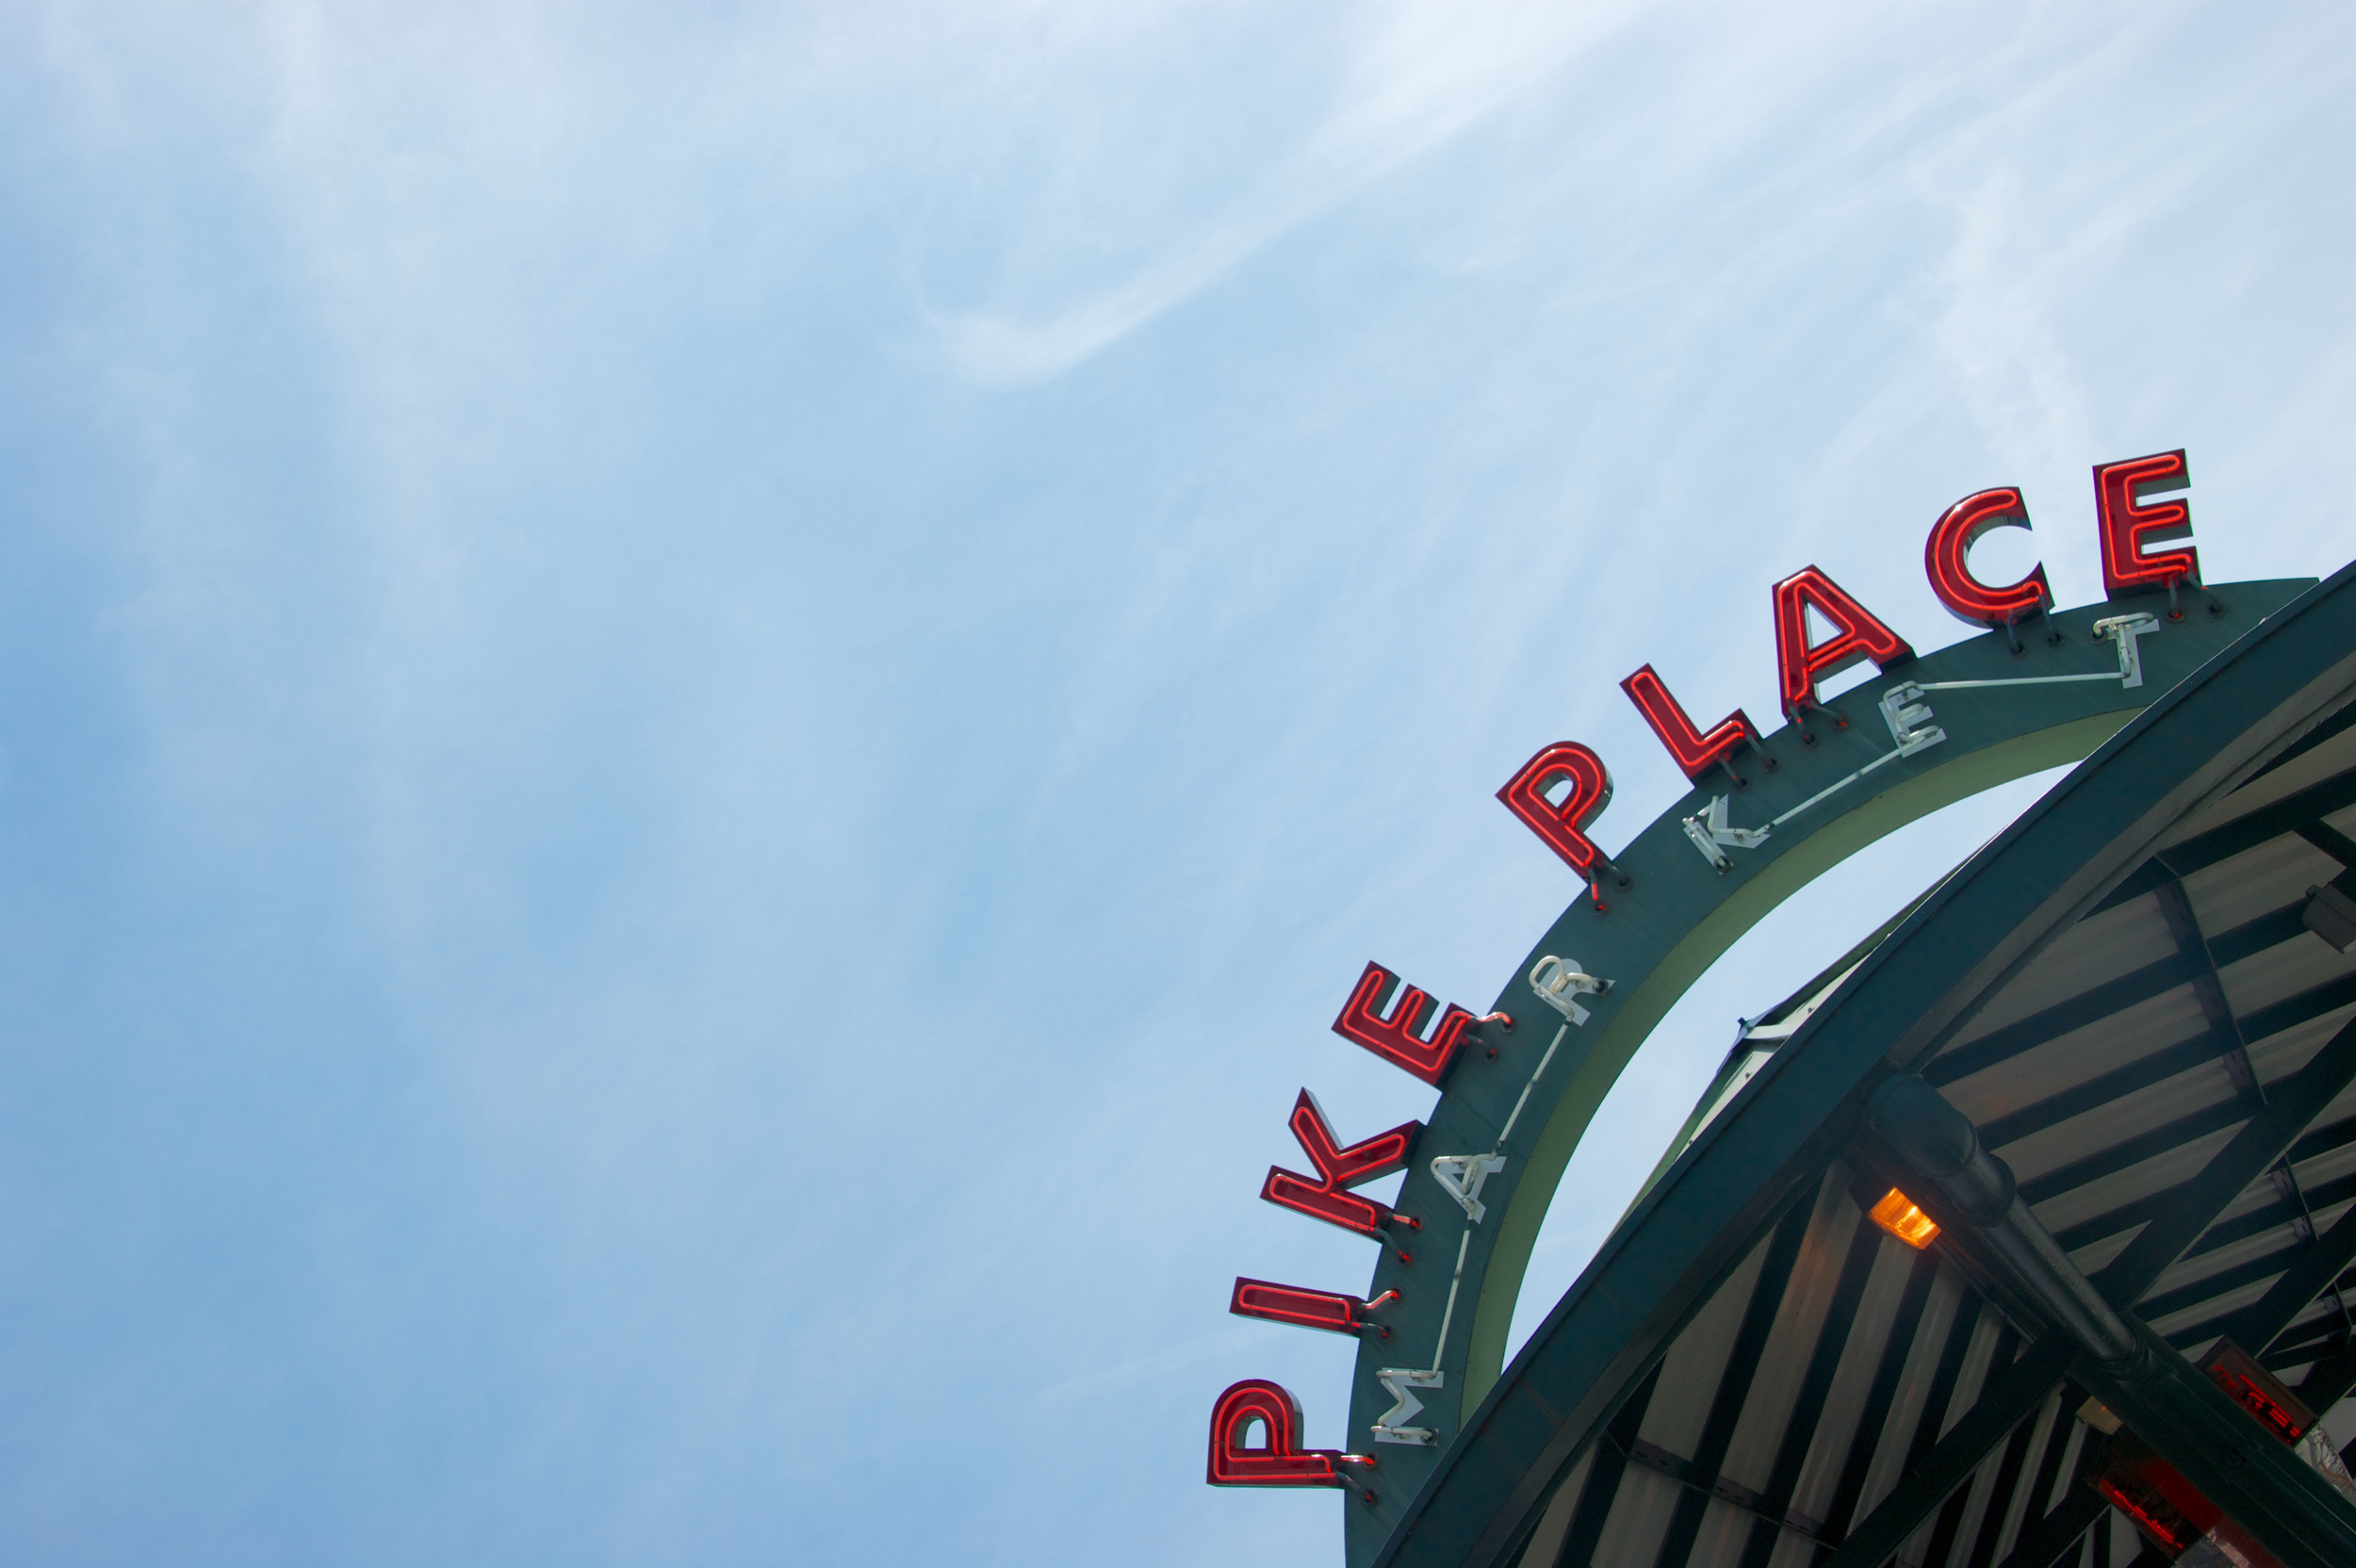 Pike Place Bus Stop